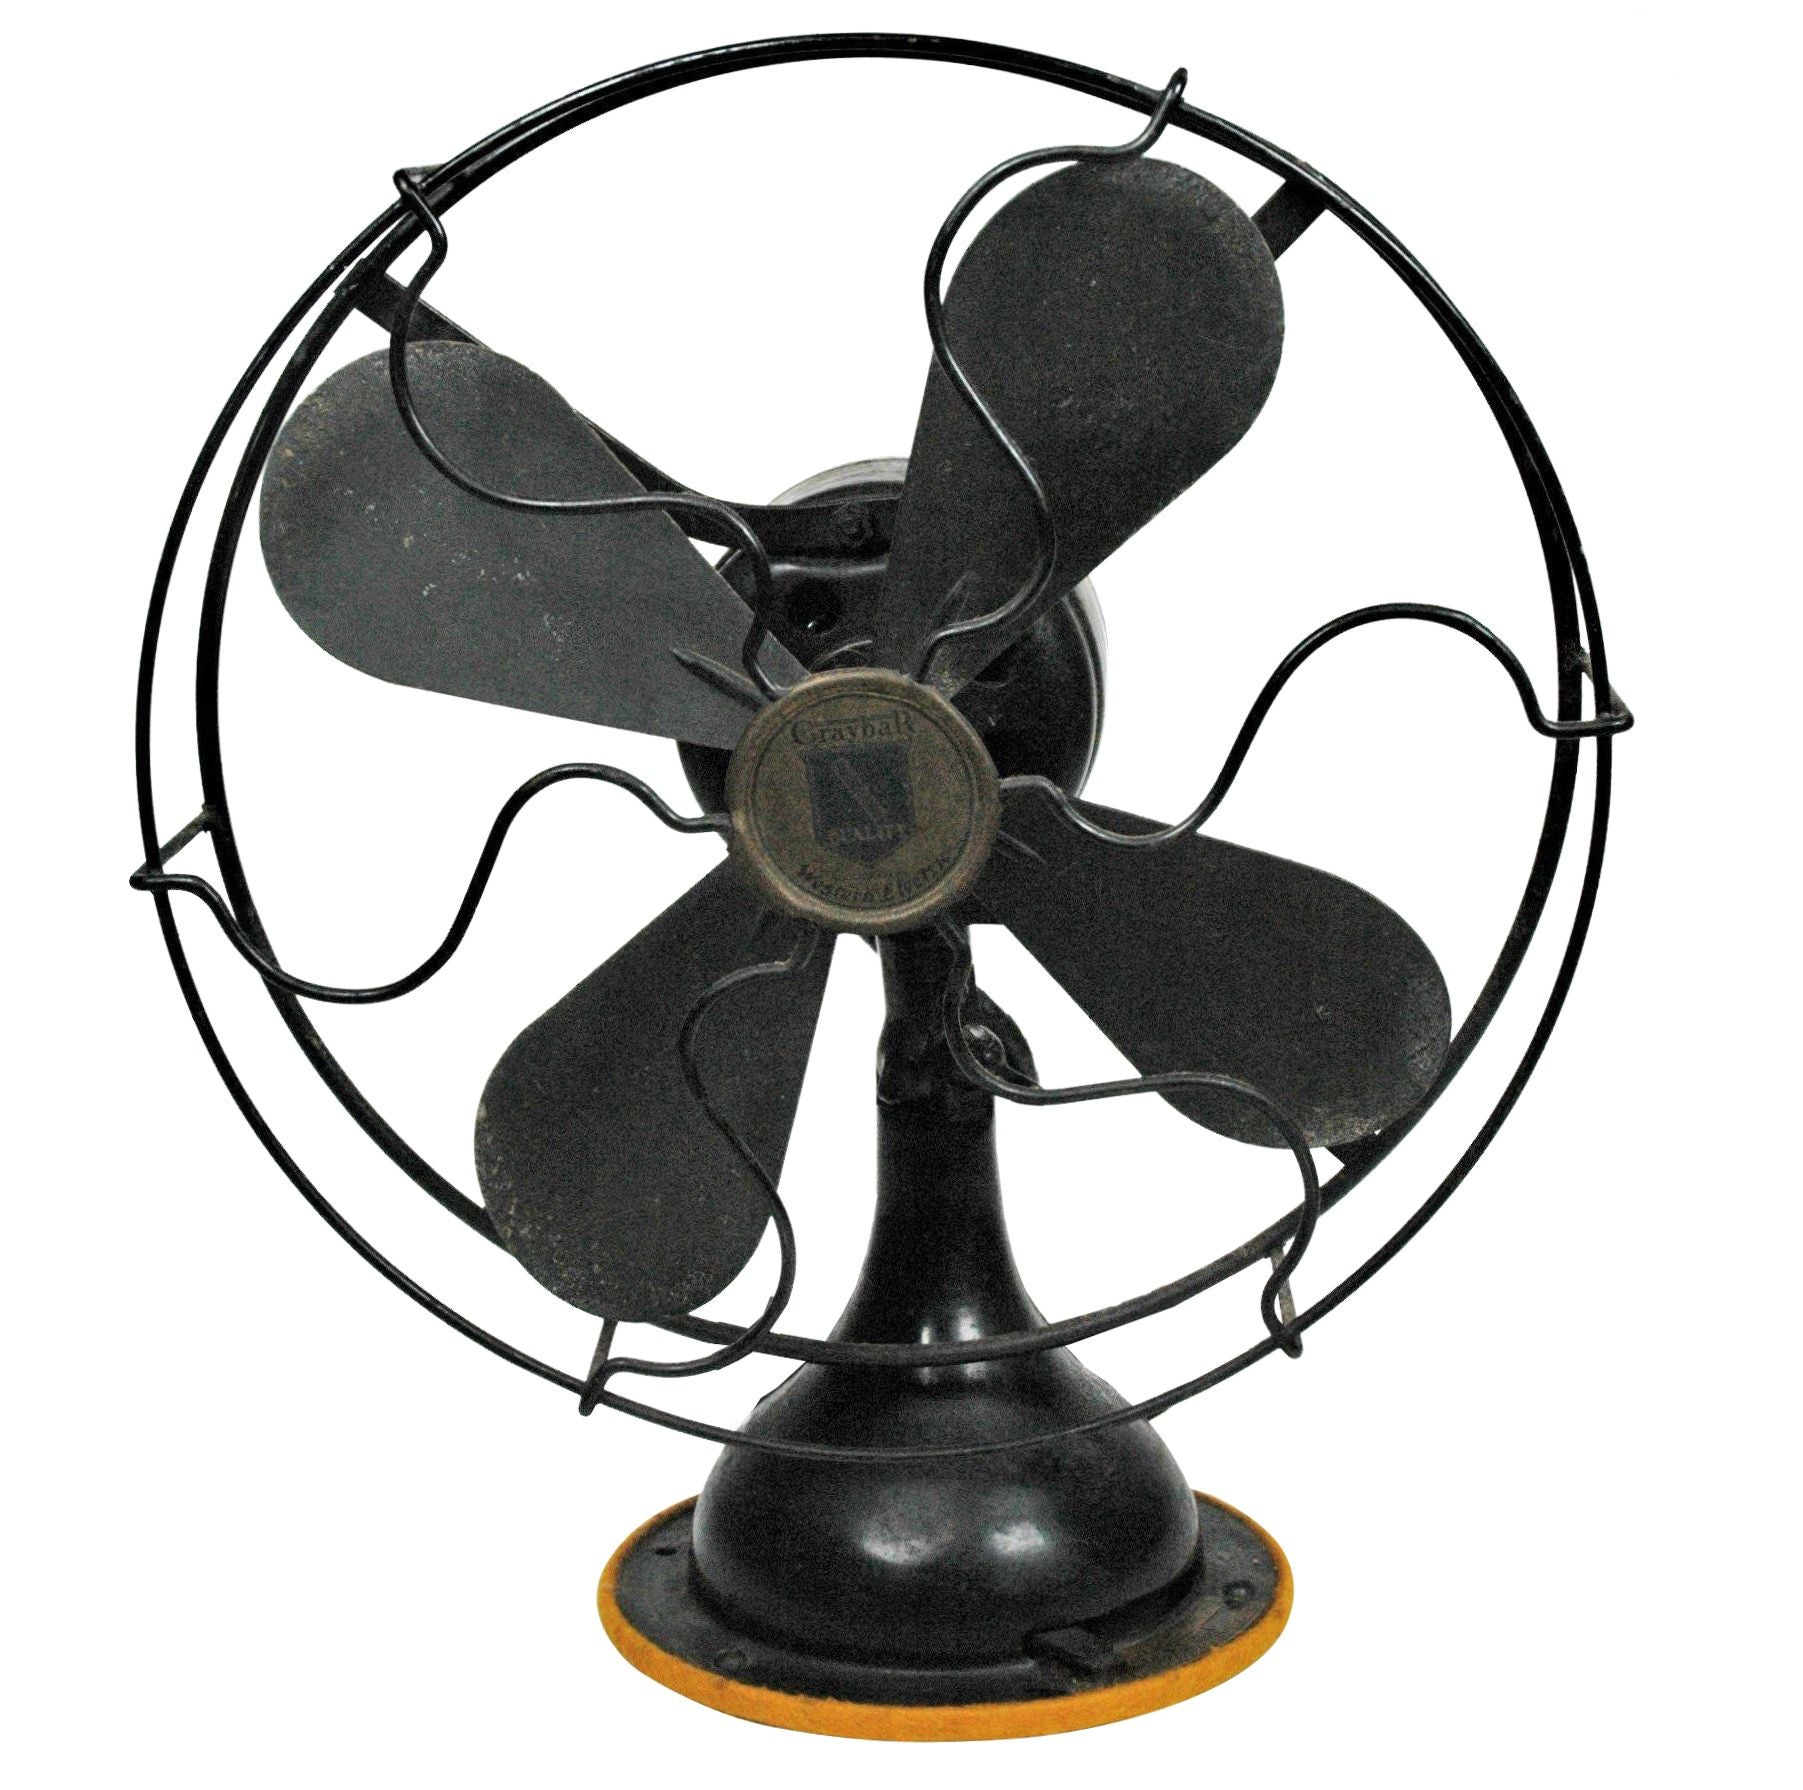 Best Table Top Fan : Antique table top fan chairish